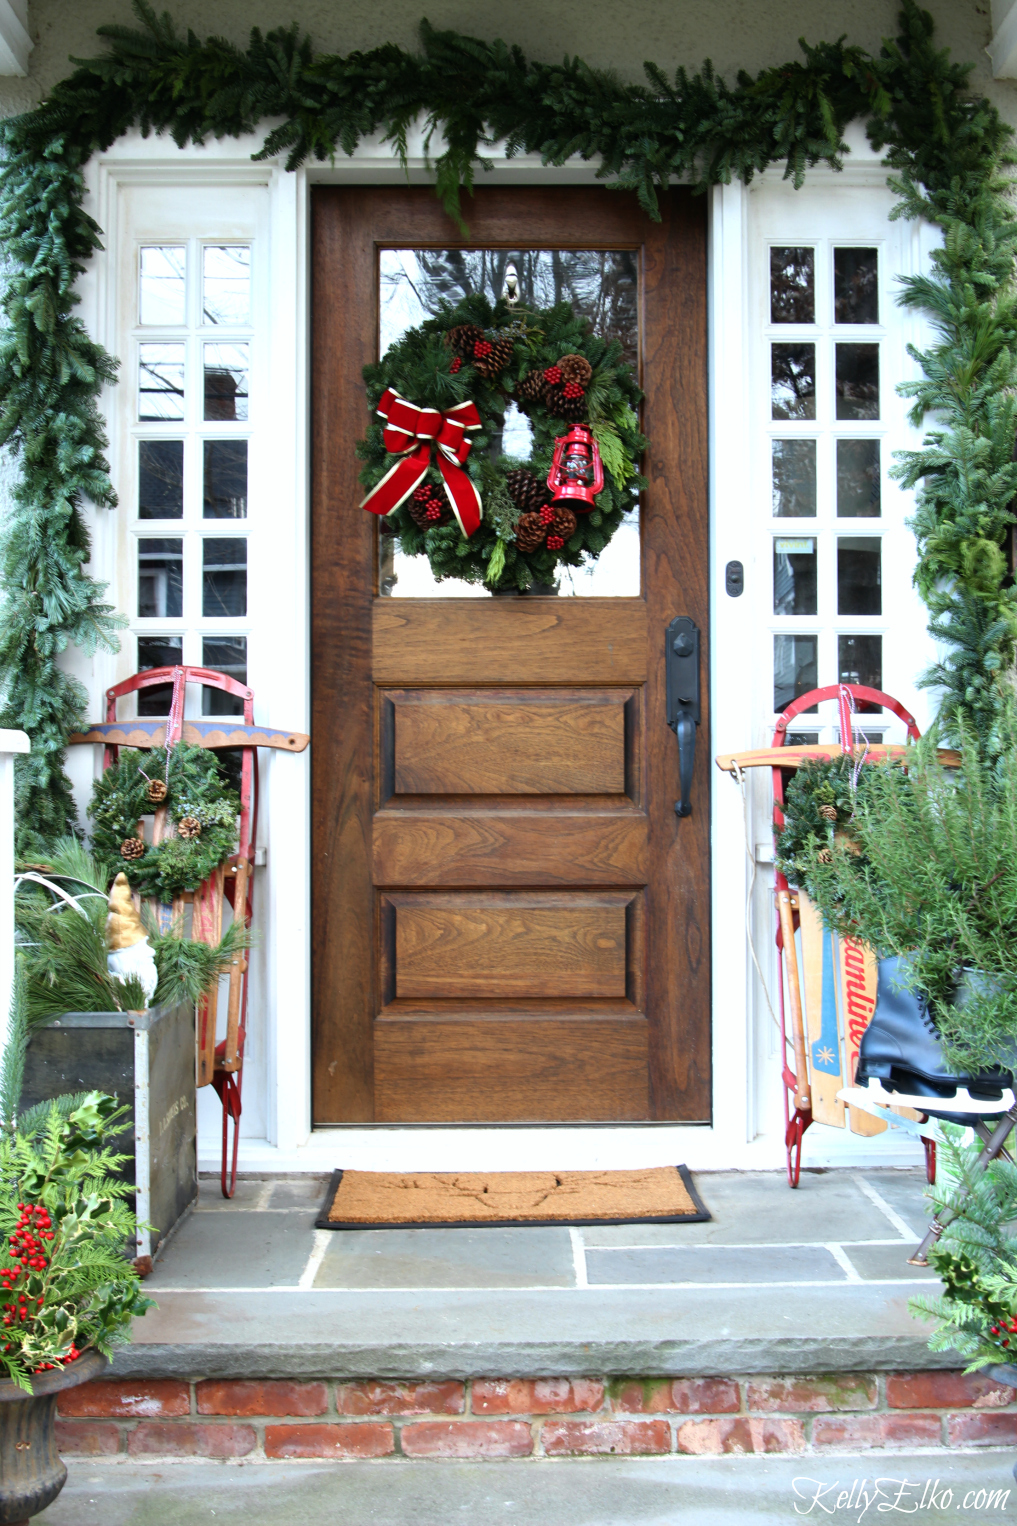 Vintage Christmas Porch Decorating Ideas - love the pair of old sleds kellyelko.com #christmas #christmasporch #christmasdecor #vintagechristmas #sled #christmasdoor #christmaswreath #christmasgarland #kellyelko